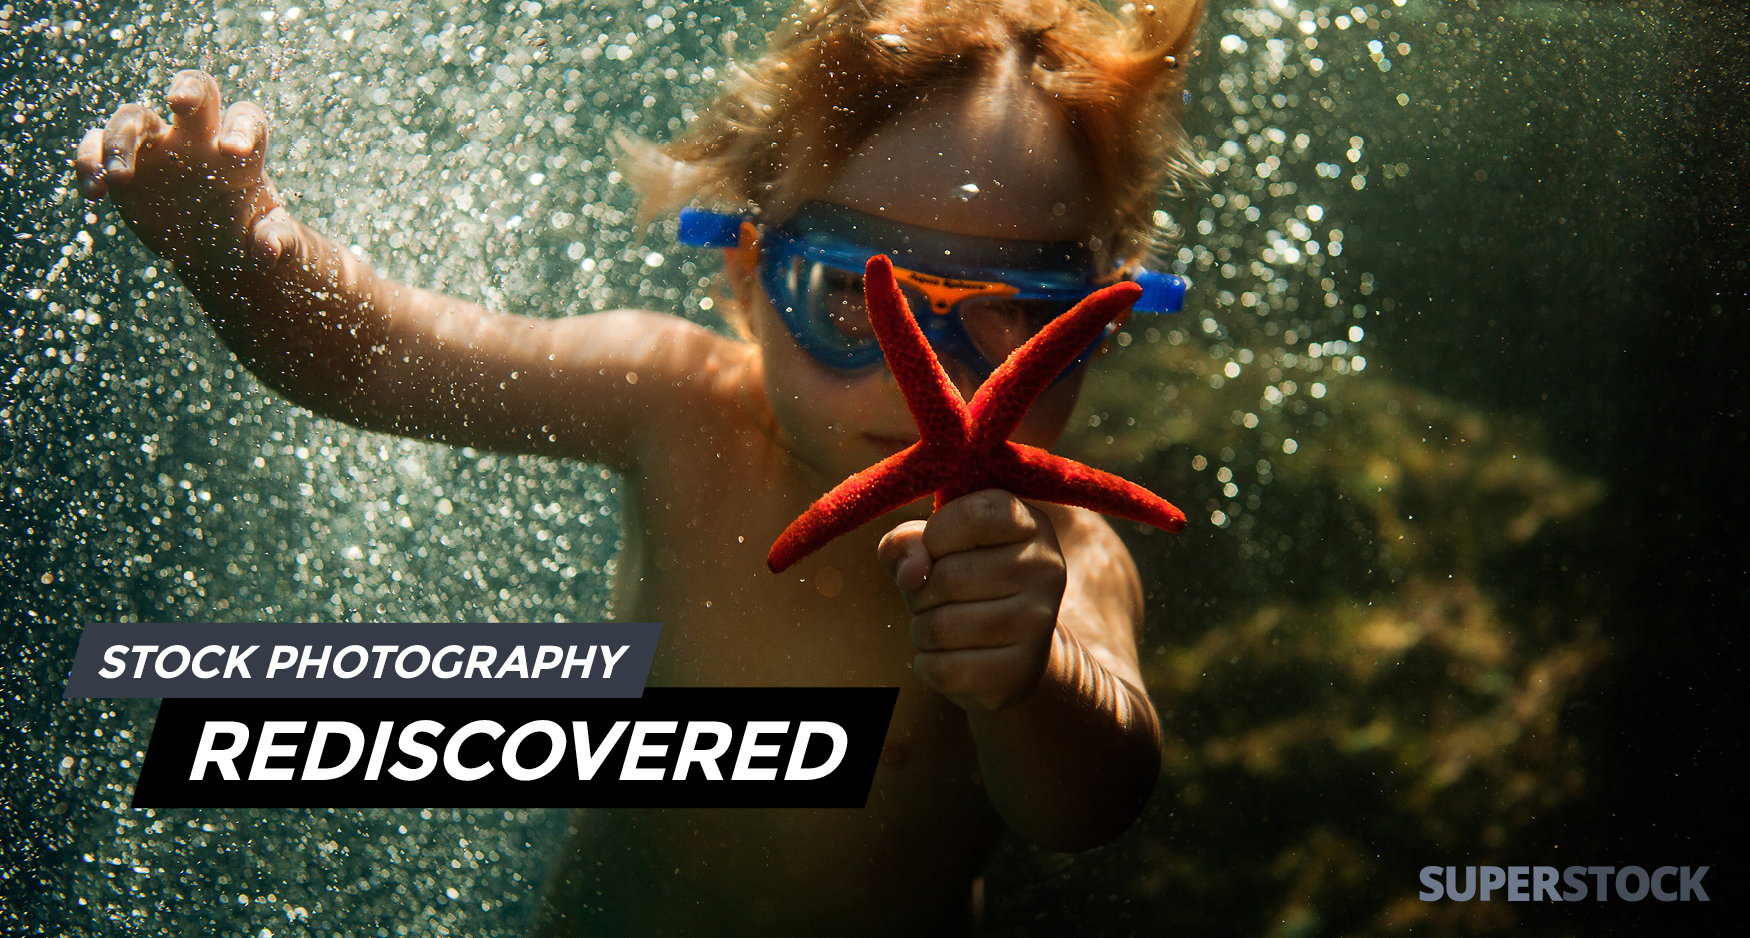 SS Slide 2 - SUPERSTOCK - STOCK PHOTOGRAPHY REIMAGINED CAMPAIGN